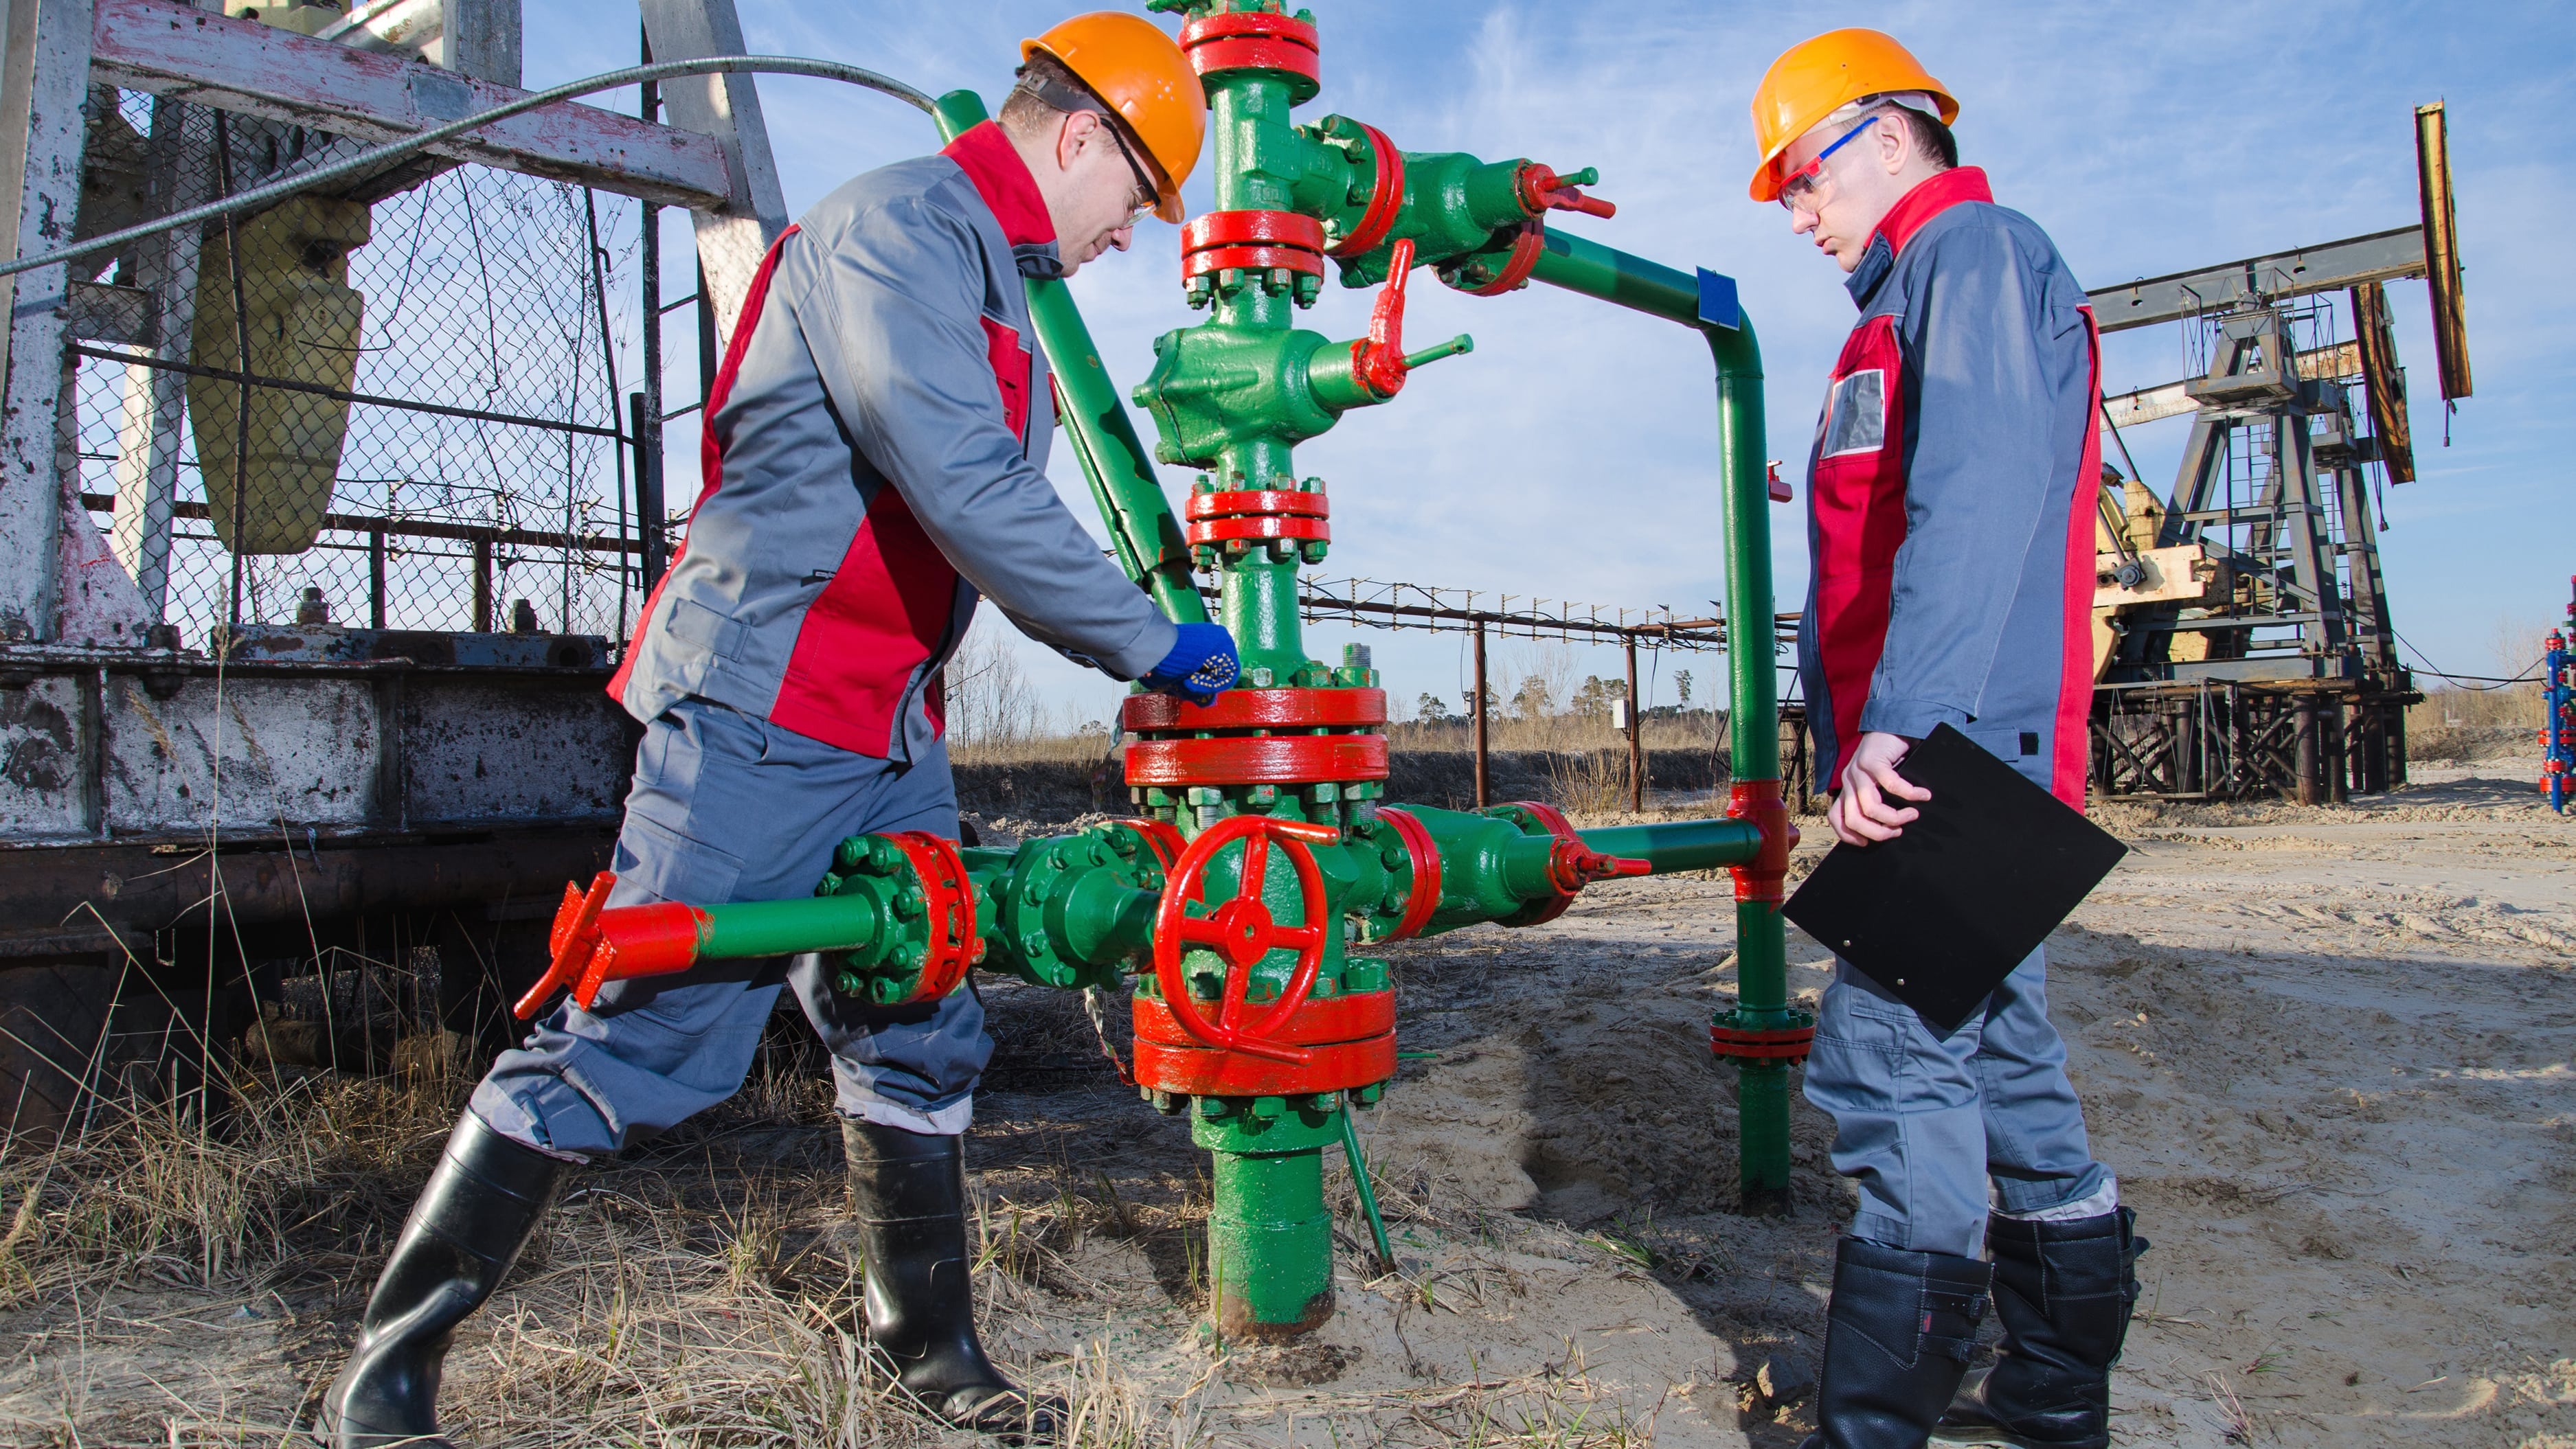 men-inspecting-pipes-on-job-site